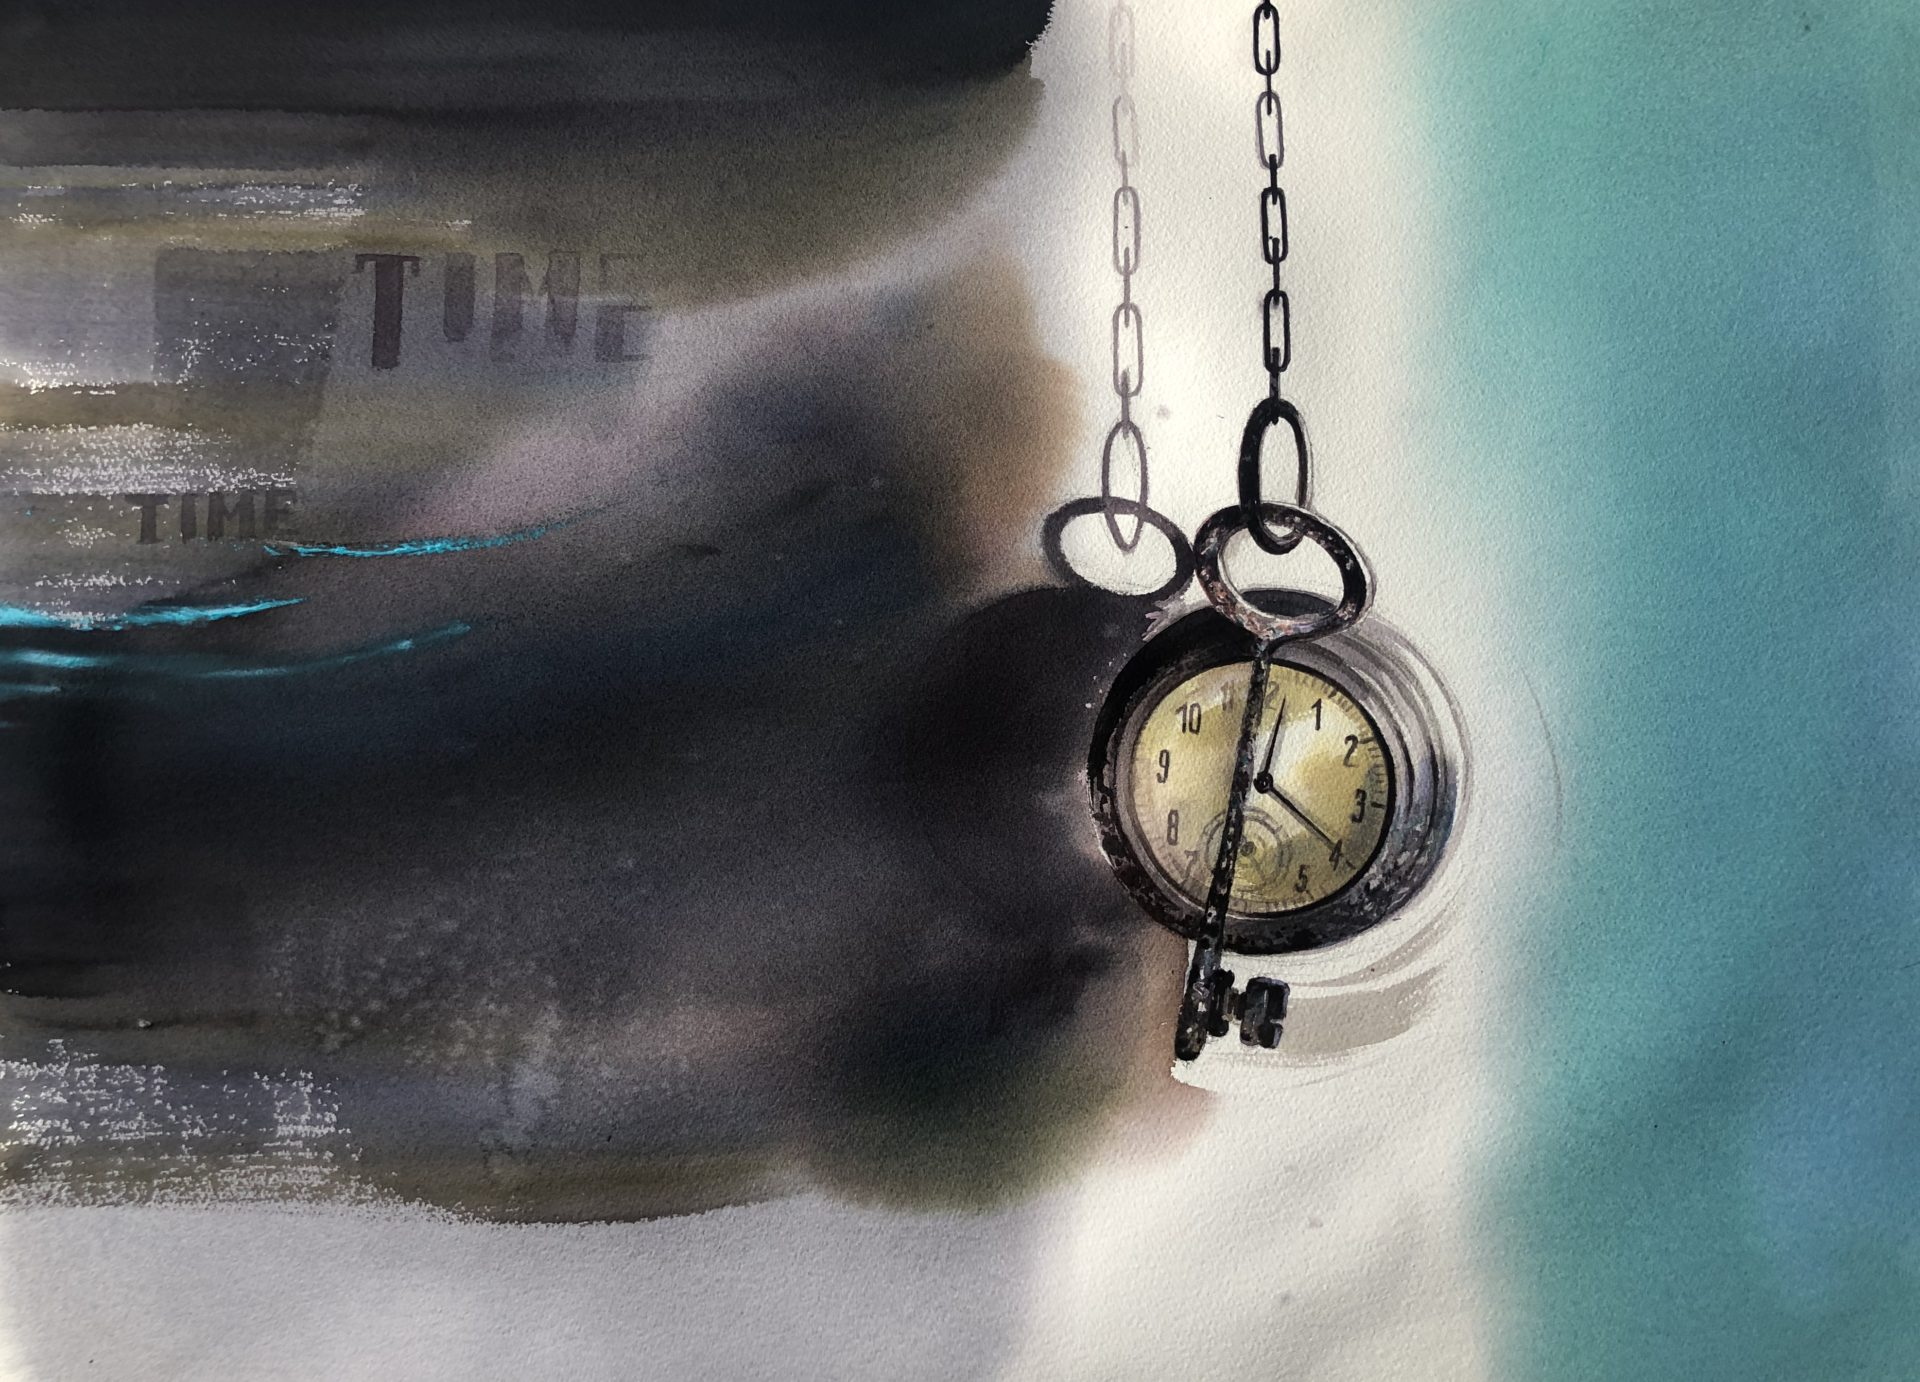 Stop the Time, Watercolour, 56x76cm,Zastav čas